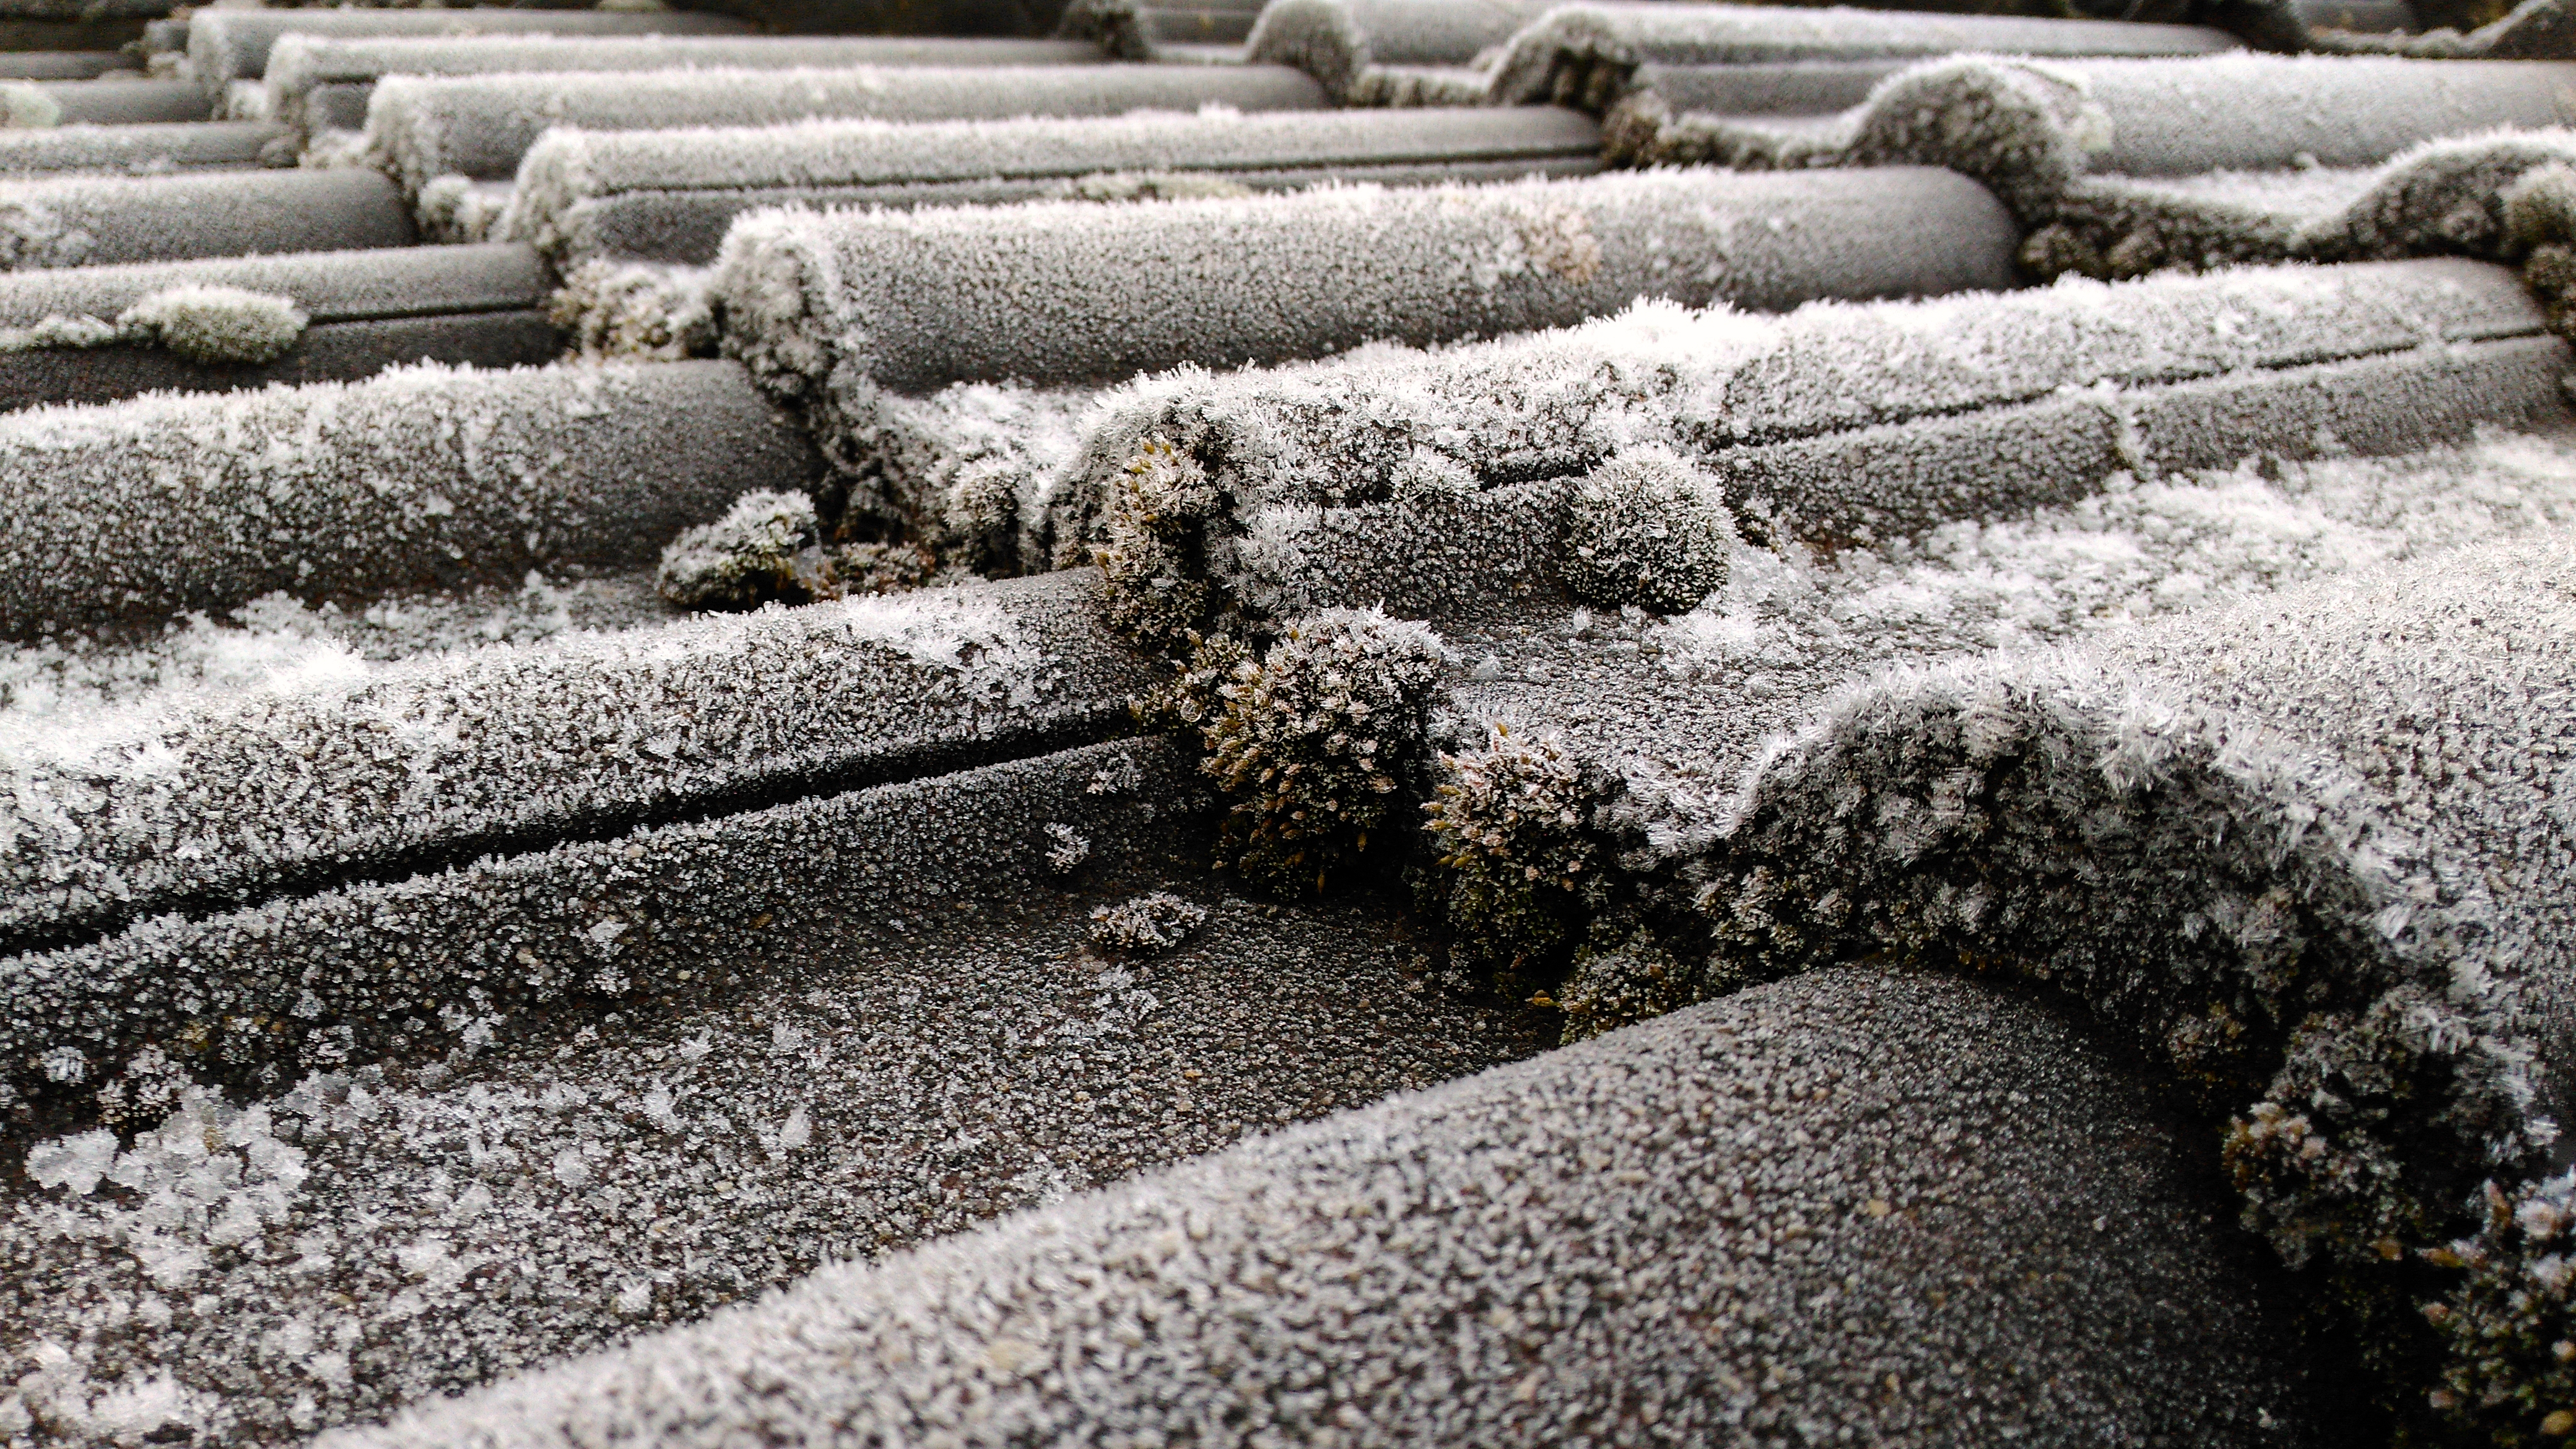 Close-up of hoarfrost on concrete roof tiles with moss in winter.